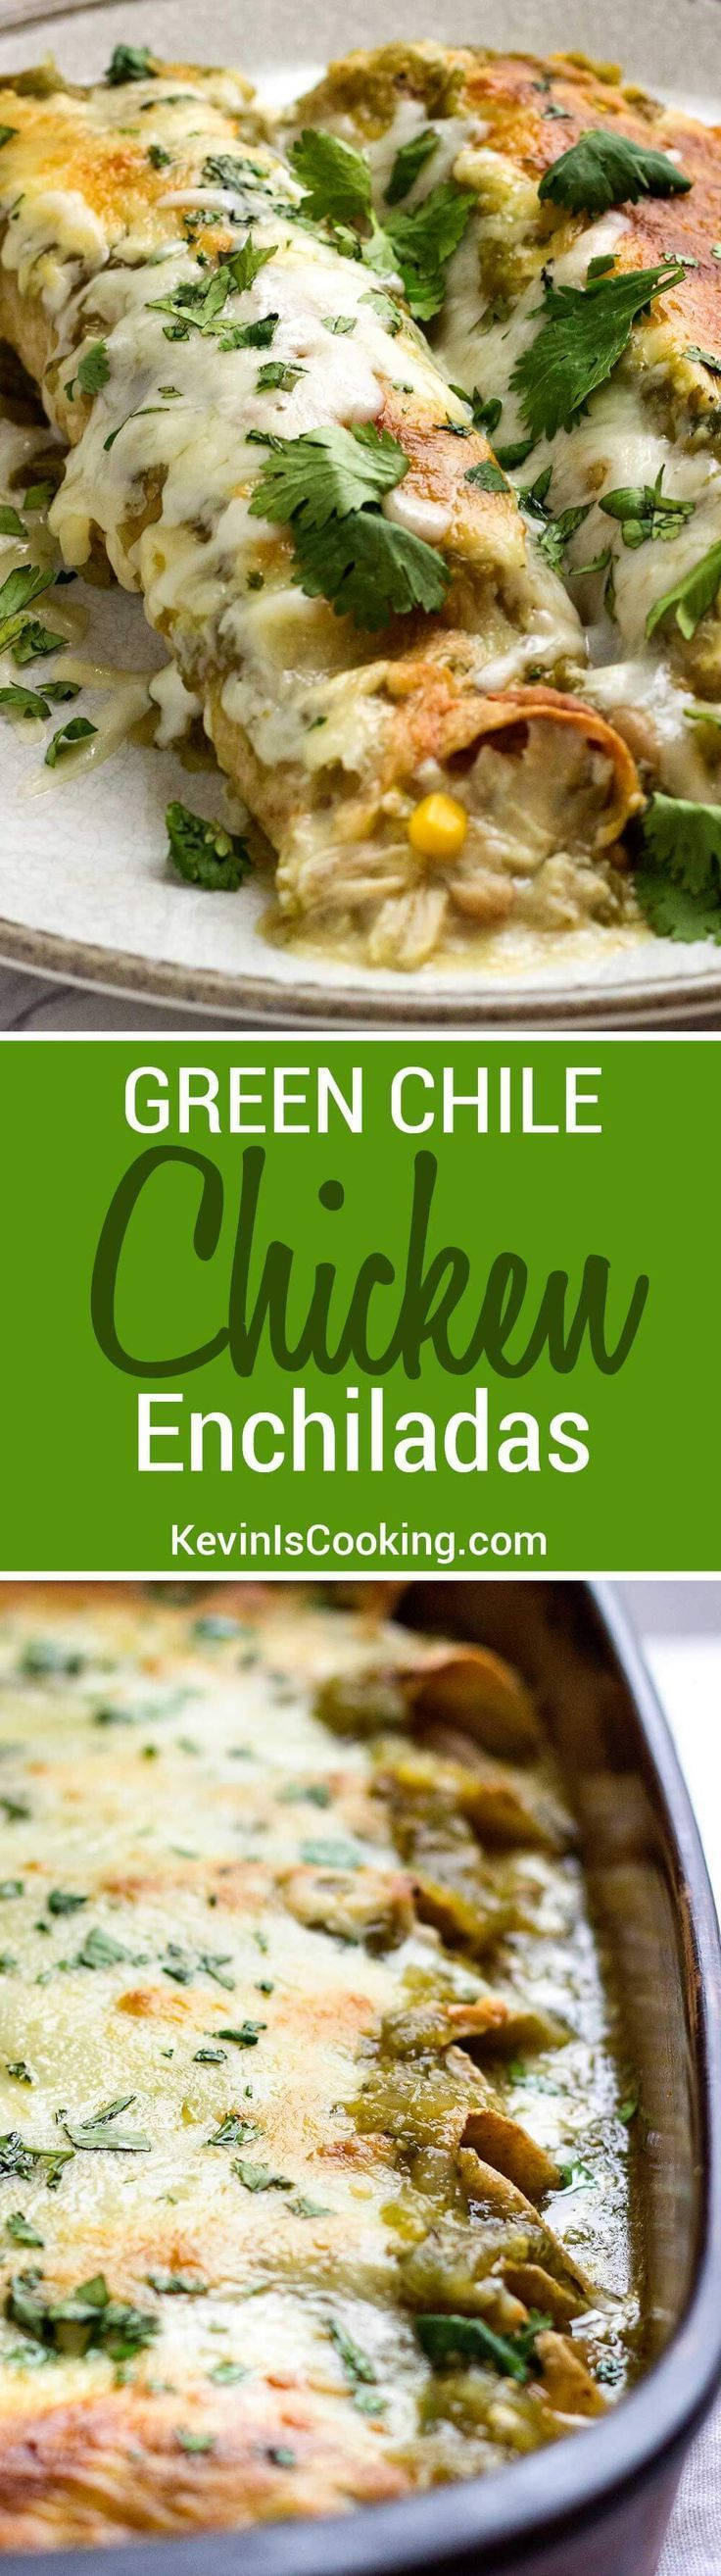 These Green Chile Chicken Enchiladas use shredded rotisserie chicken, white beans, corn and plenty of Pepper Jack cheese then are smothered in a green salsa verde. Super easy to put together and are great to freeze for later. via /keviniscooking/